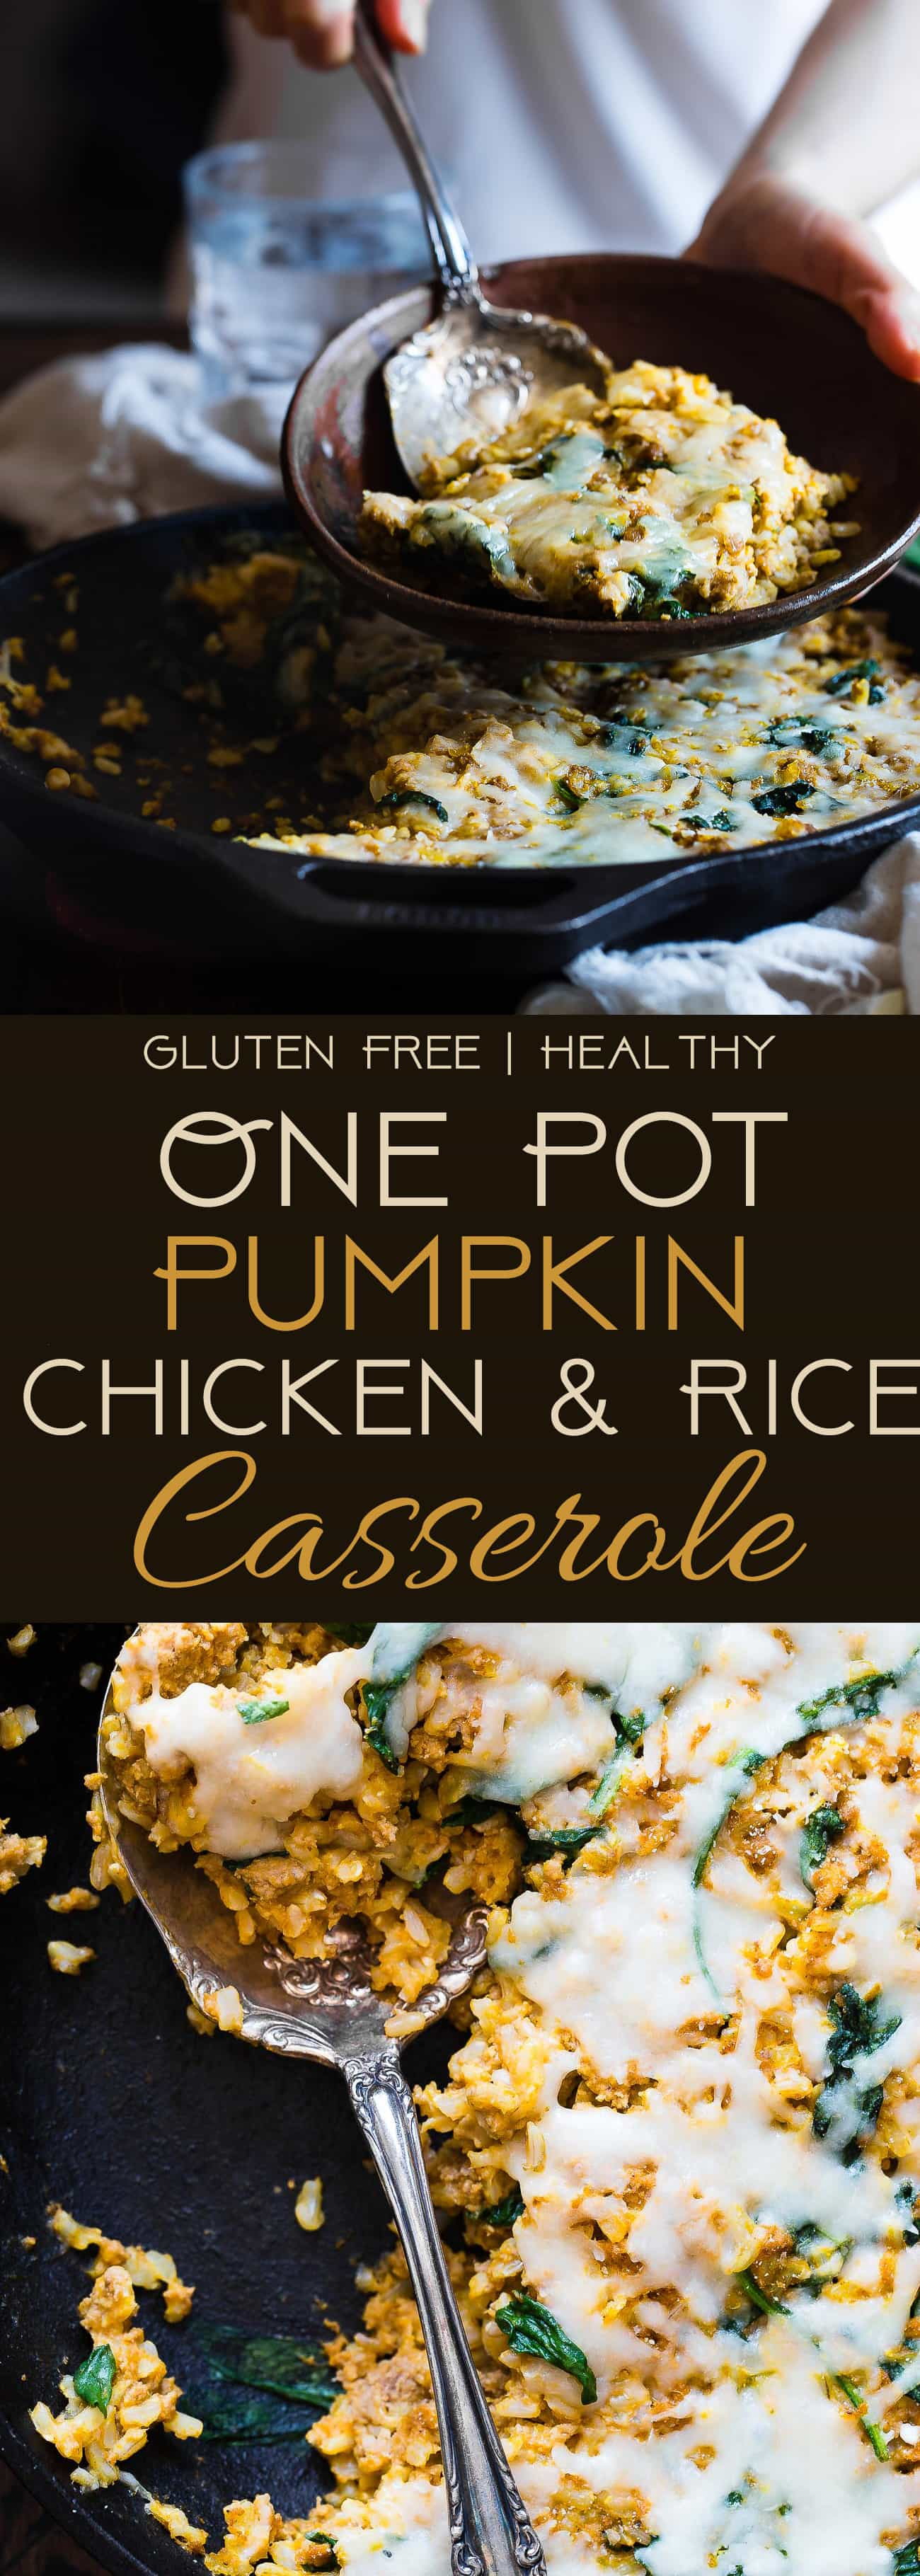 One Pot Pumpkin Rice Casserole - This rice casserole only requires one pot, under 10 ingredients and has lots of cheesy, pumpkin taste! It's an easy, gluten free, healthy fall dinner that is sure to be a crowd pleaser! | Foodfaithfitness.com | @FoodFaithFit | Simple rice casserole. easy rice casserole. healthy rice casserole. rice casserole recipes. chicken rice casserole. rice casserole dinners. one pot meals. 30 minute meals.